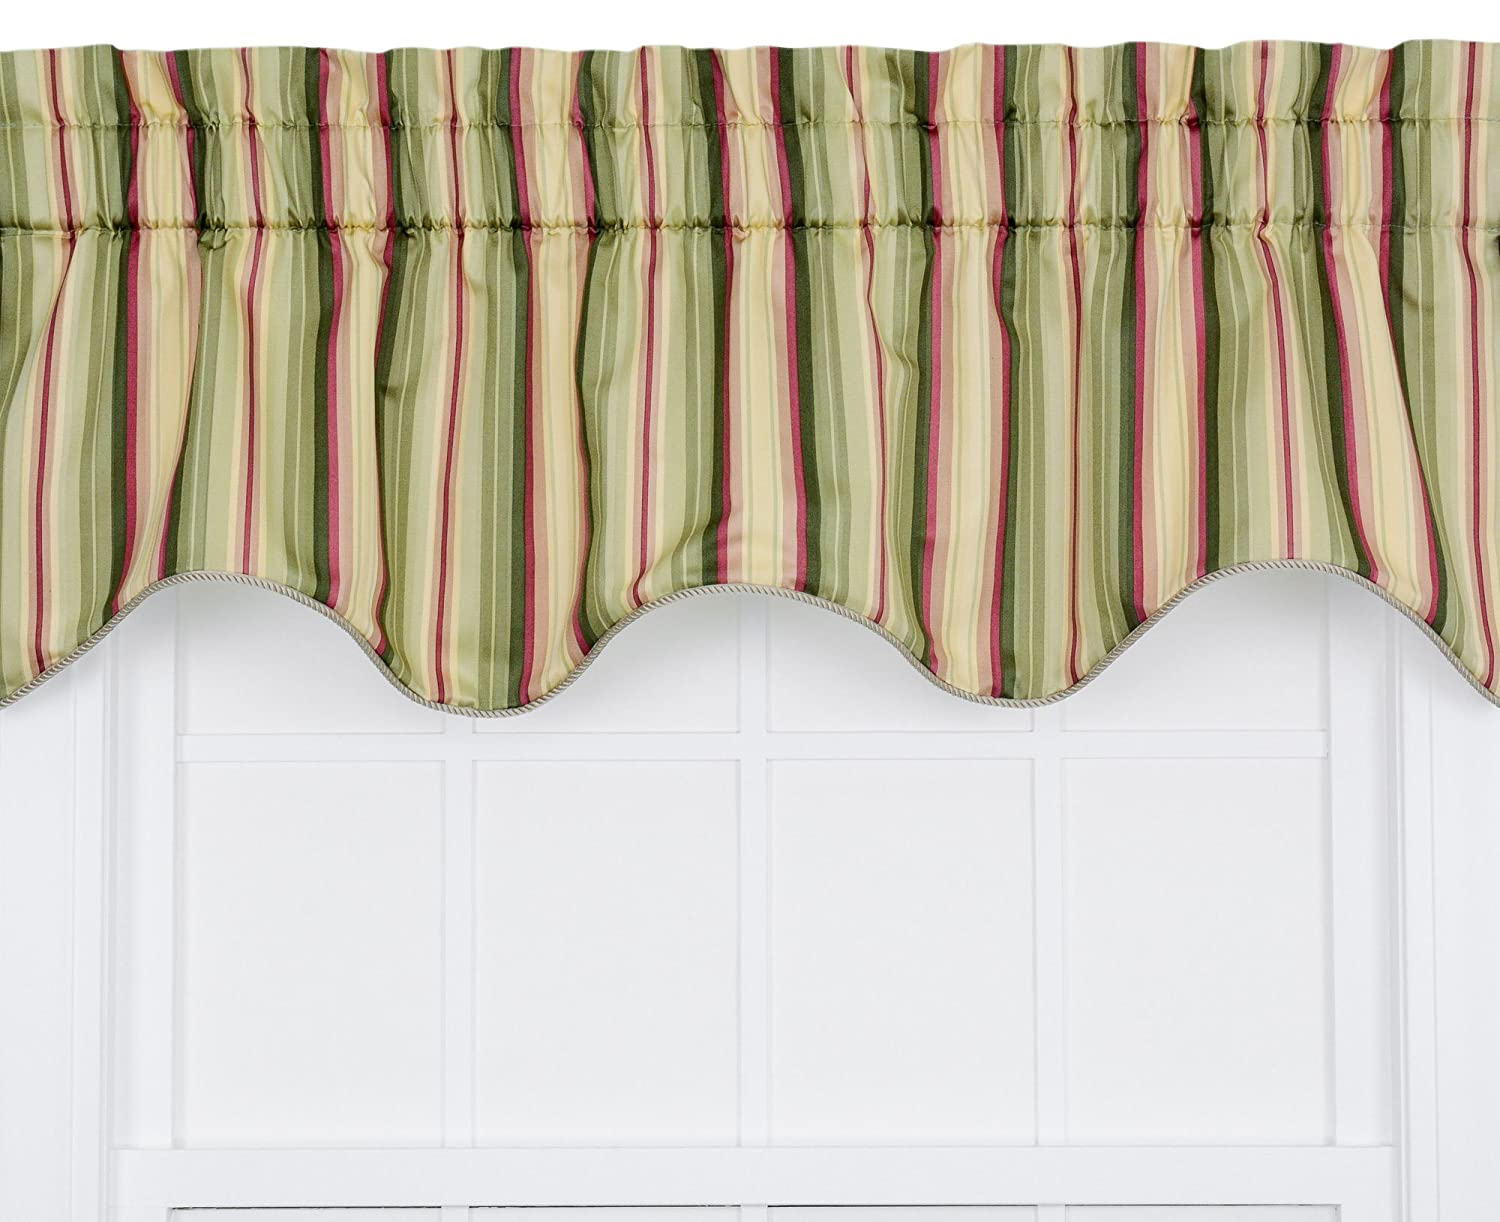 Ellis Curtain Mateo Medium Scale Stripe Print Lined Duchess Filler Valance, 50 by 15-Inch, Basil